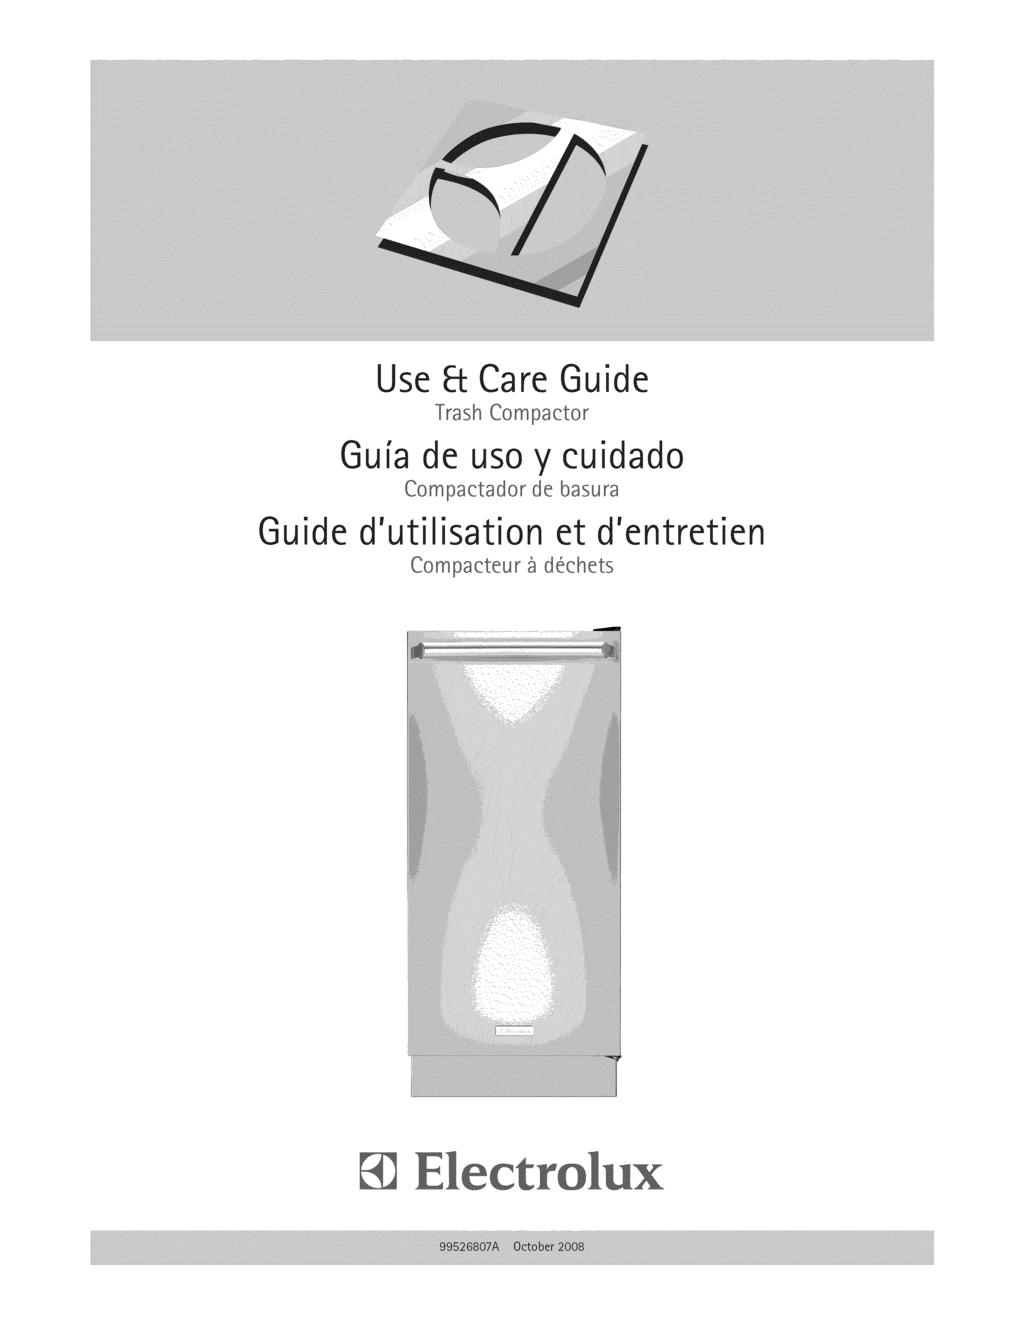 Use & Care Guide Trash Compactor Gu[a de uso y cuidado Compactador